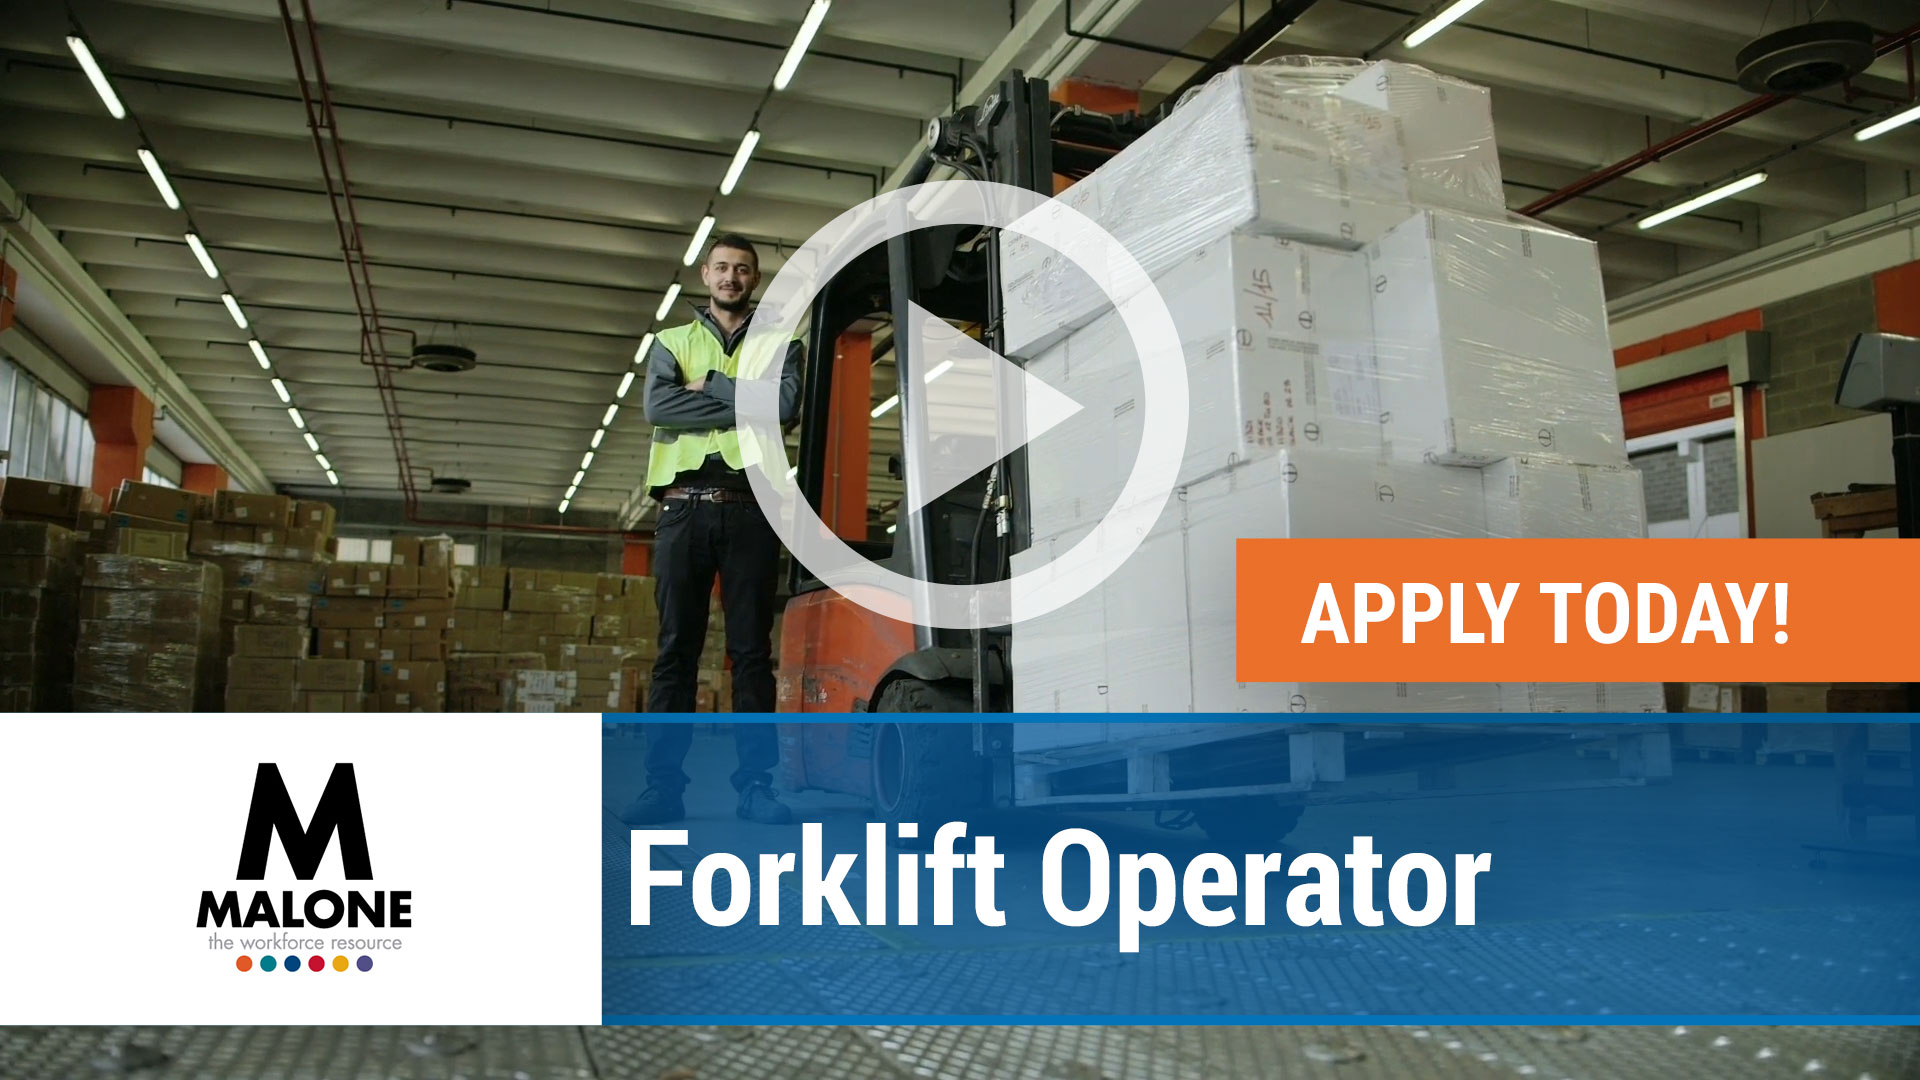 Watch our careers video for available job opening Forklift Operator in Louisville , Frankfort Kentucky